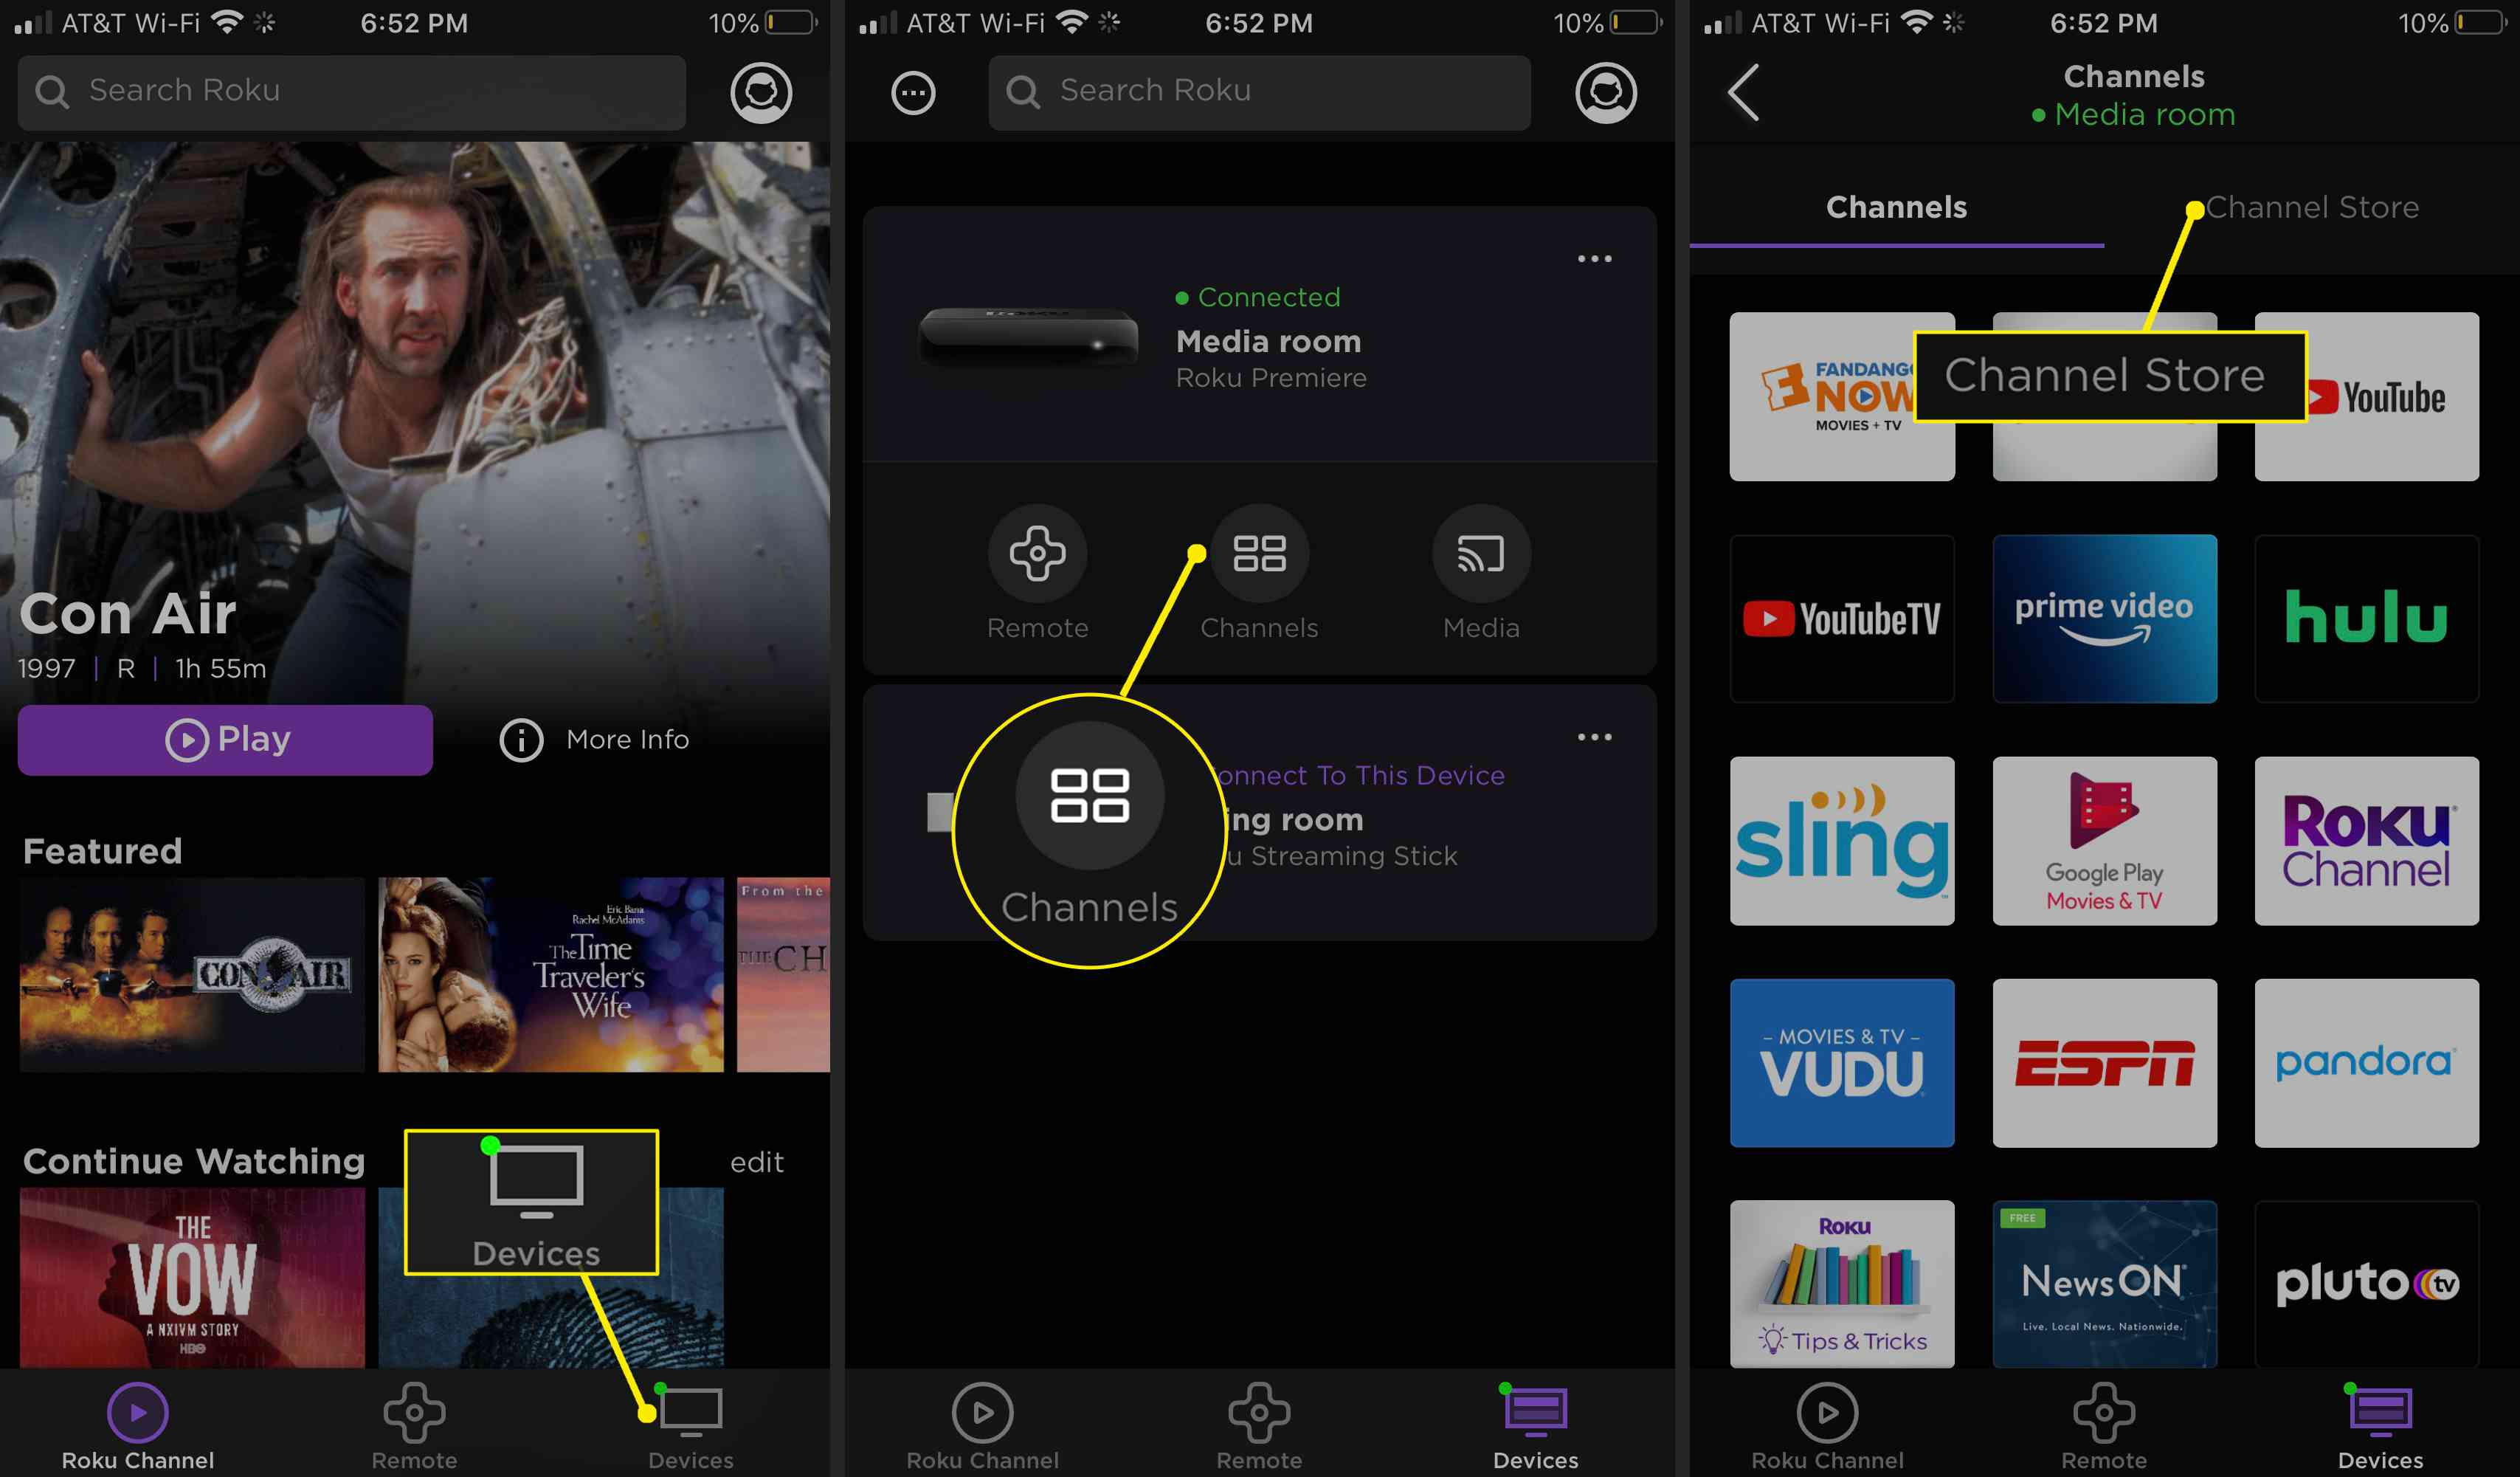 Navigate to the Roku Channel Store on the app